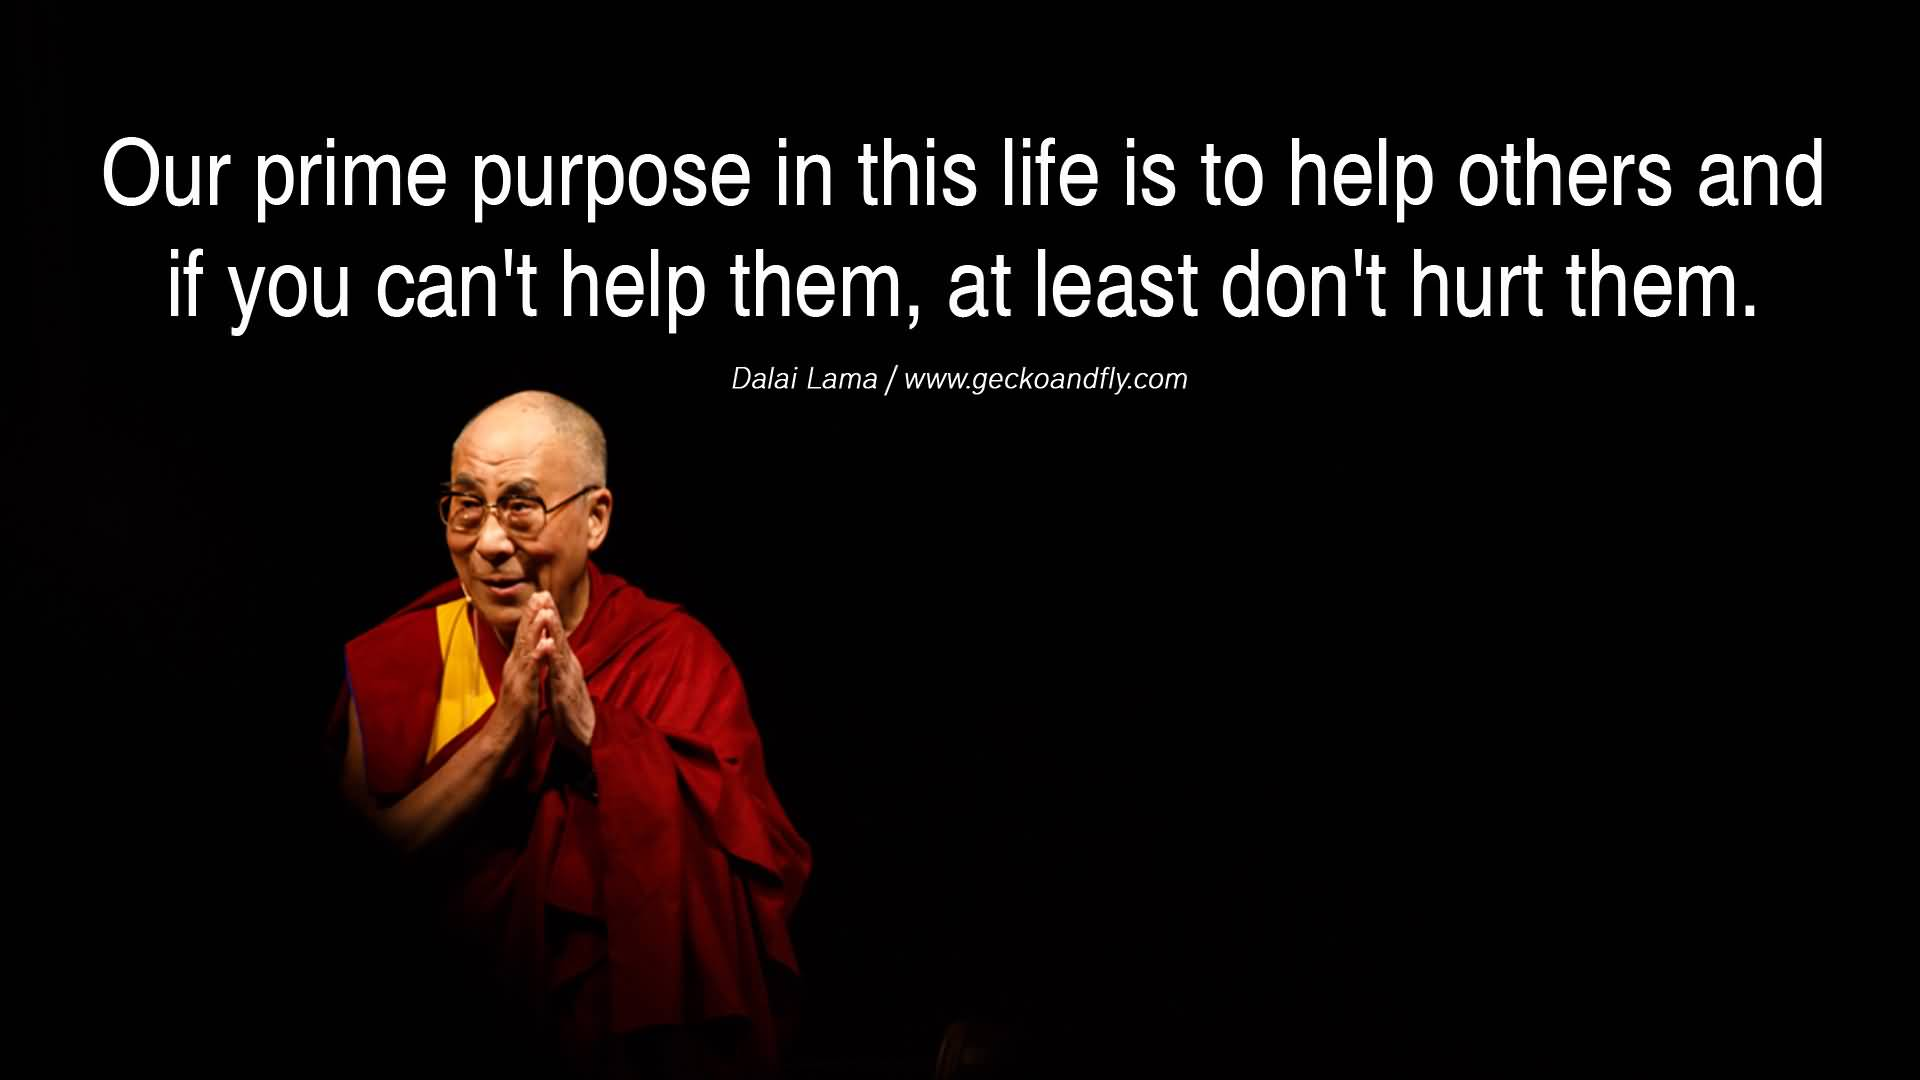 Dalai Lama Quotes On Life 13